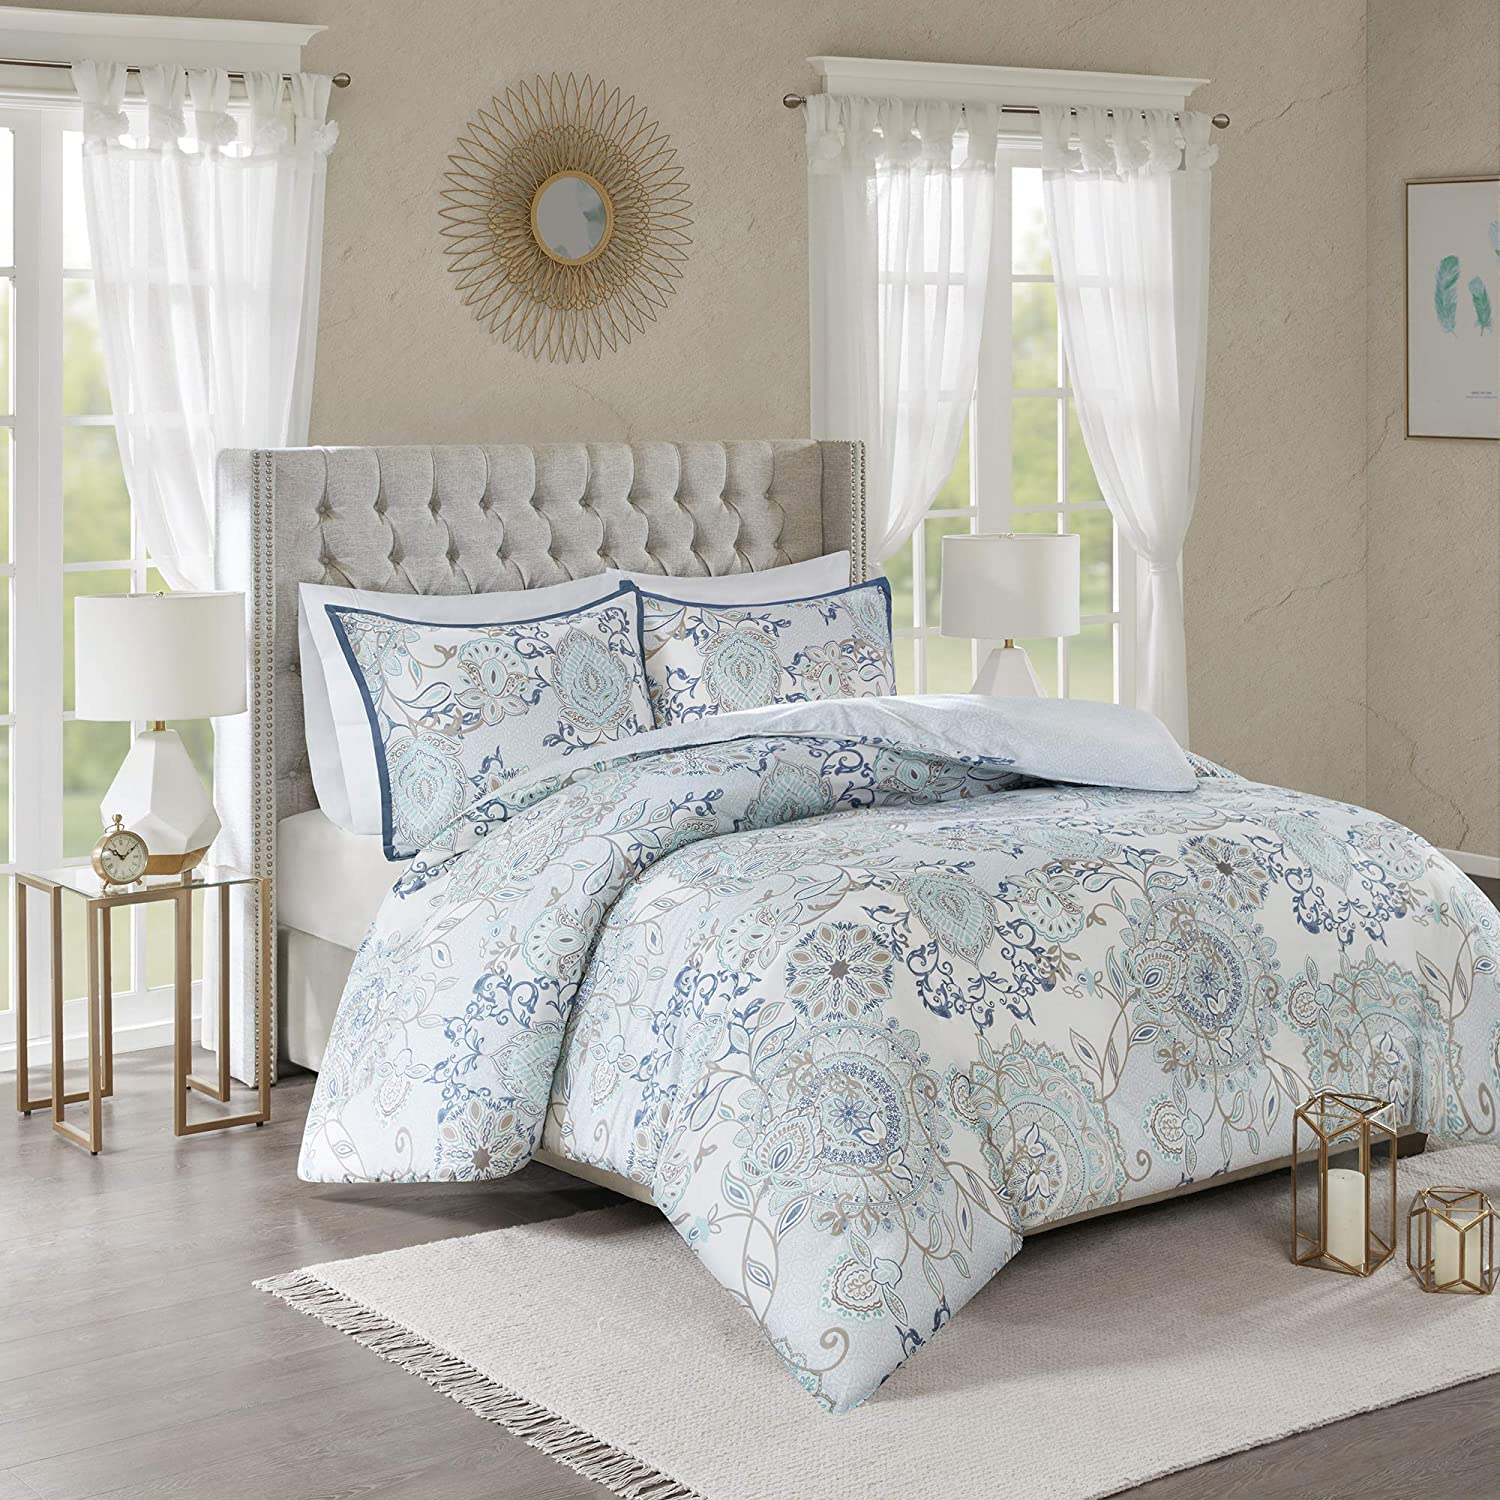 "Madison Park Isla Cotton Duvet-Casual Medallion Floral to Damask Print Reverse All Season Comforter Cover Bedding Set with Matching Shams, Full/Queen(90""x90""), Blue 3 Piece"